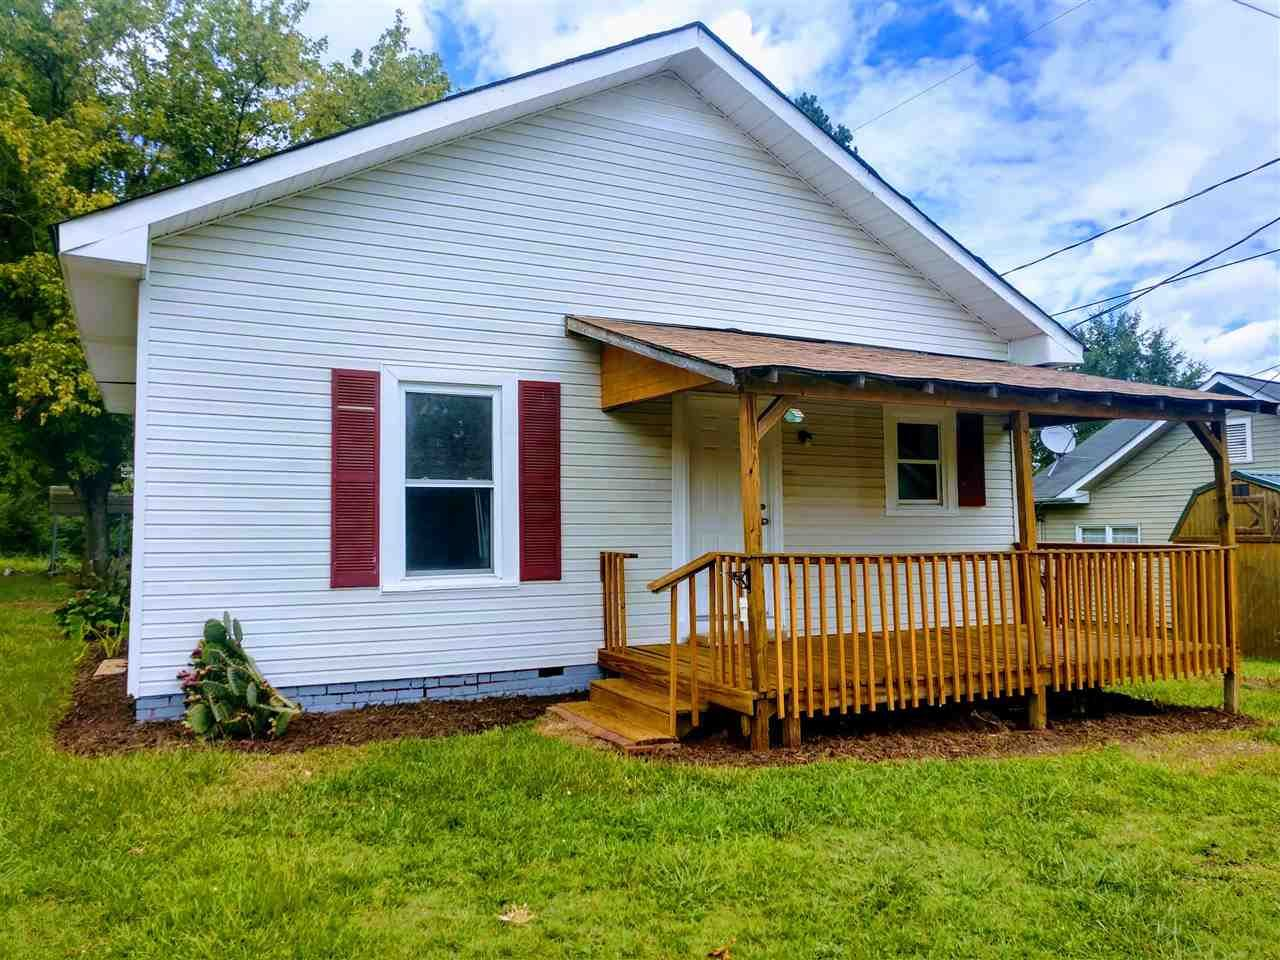 185 Dillashaw Dr, Forest City, NC 28043 - #: 48583